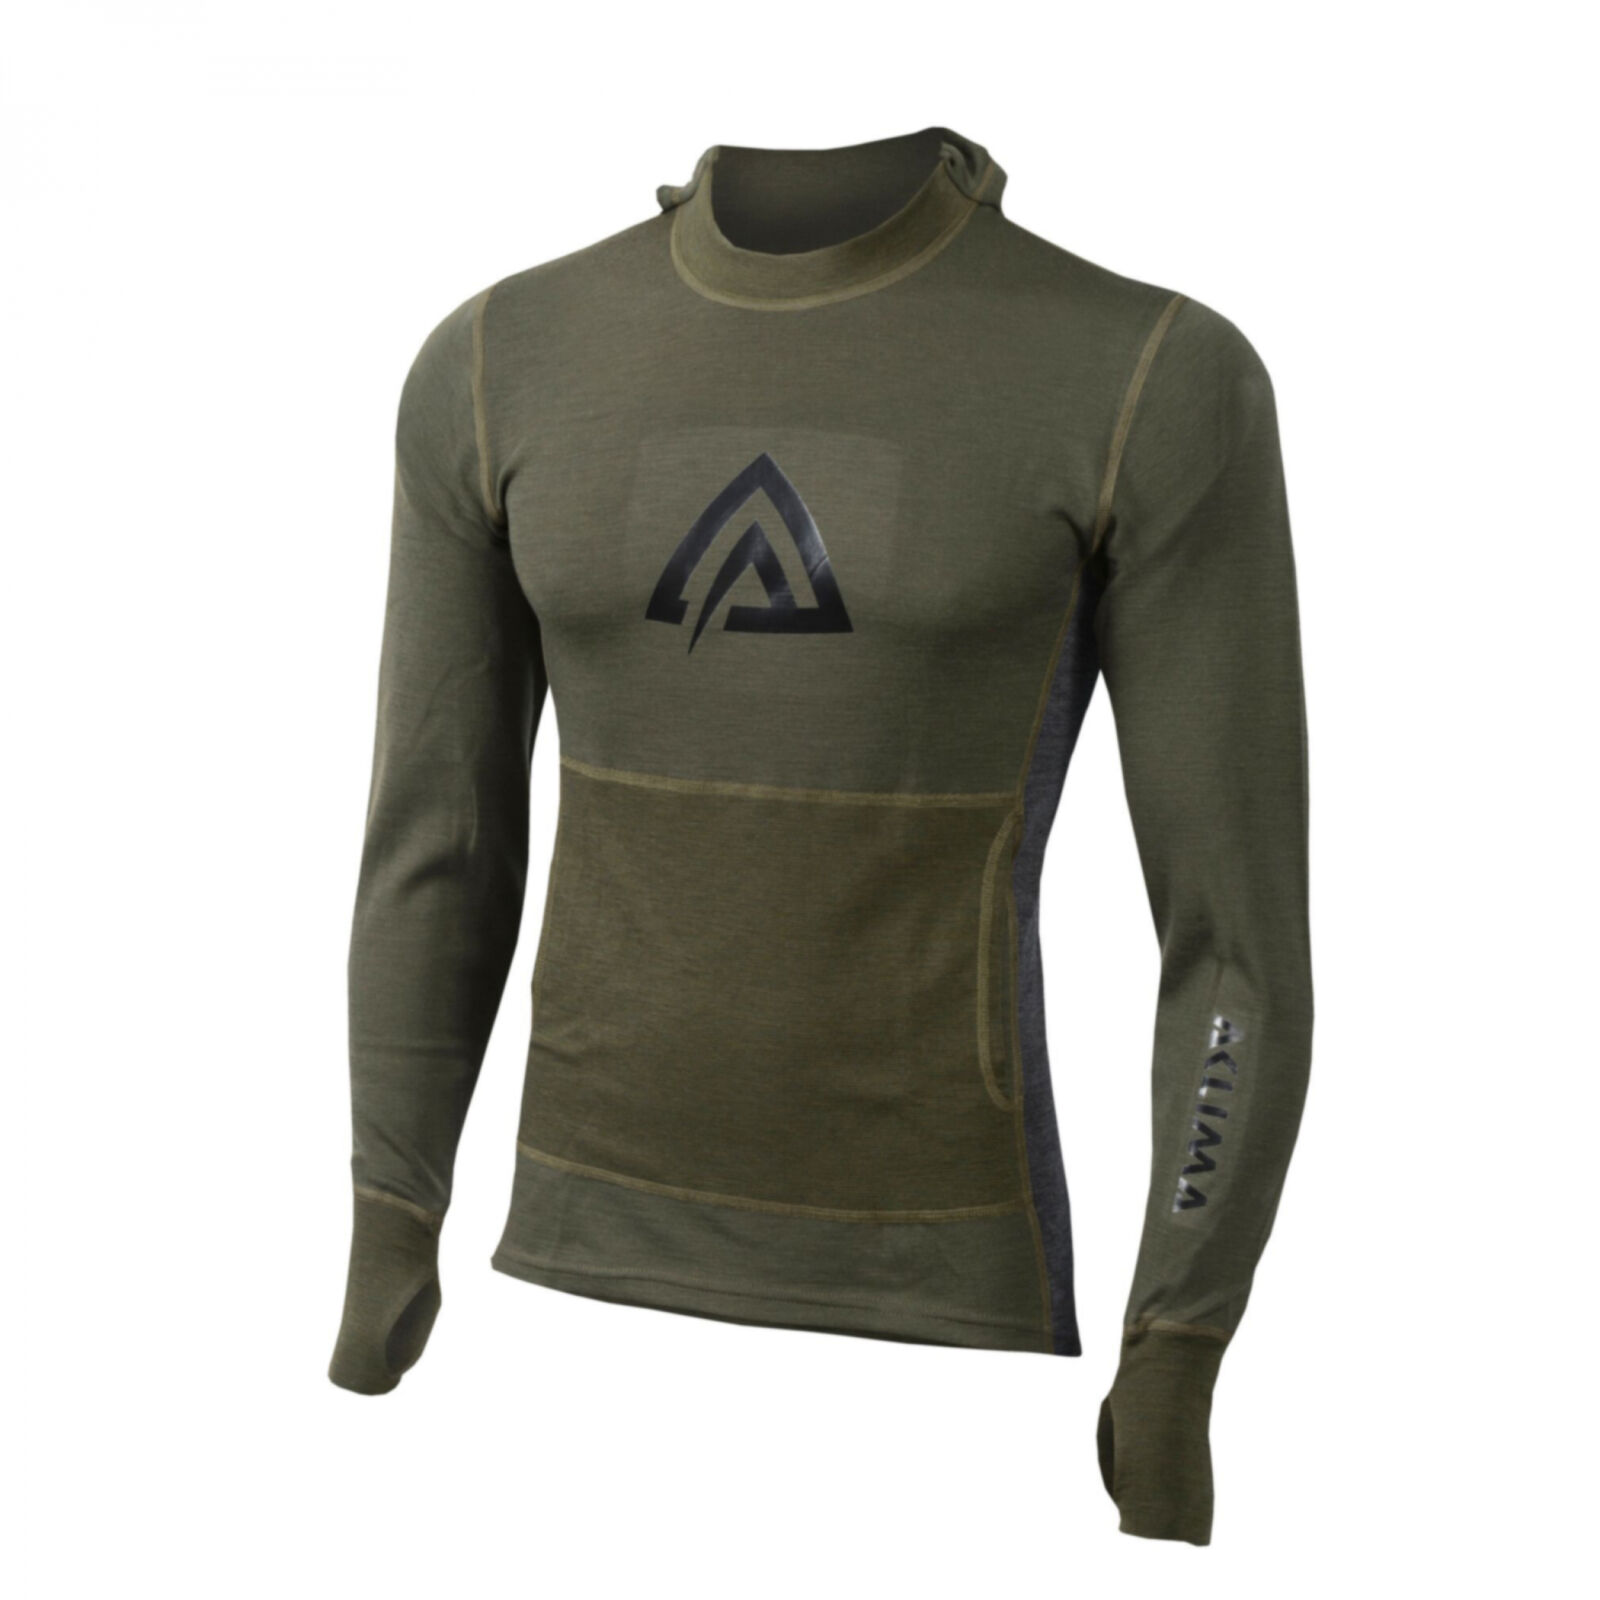 Aclima Warmwool Hoodsweater MAN olive night marengo  | Authentische Garantie